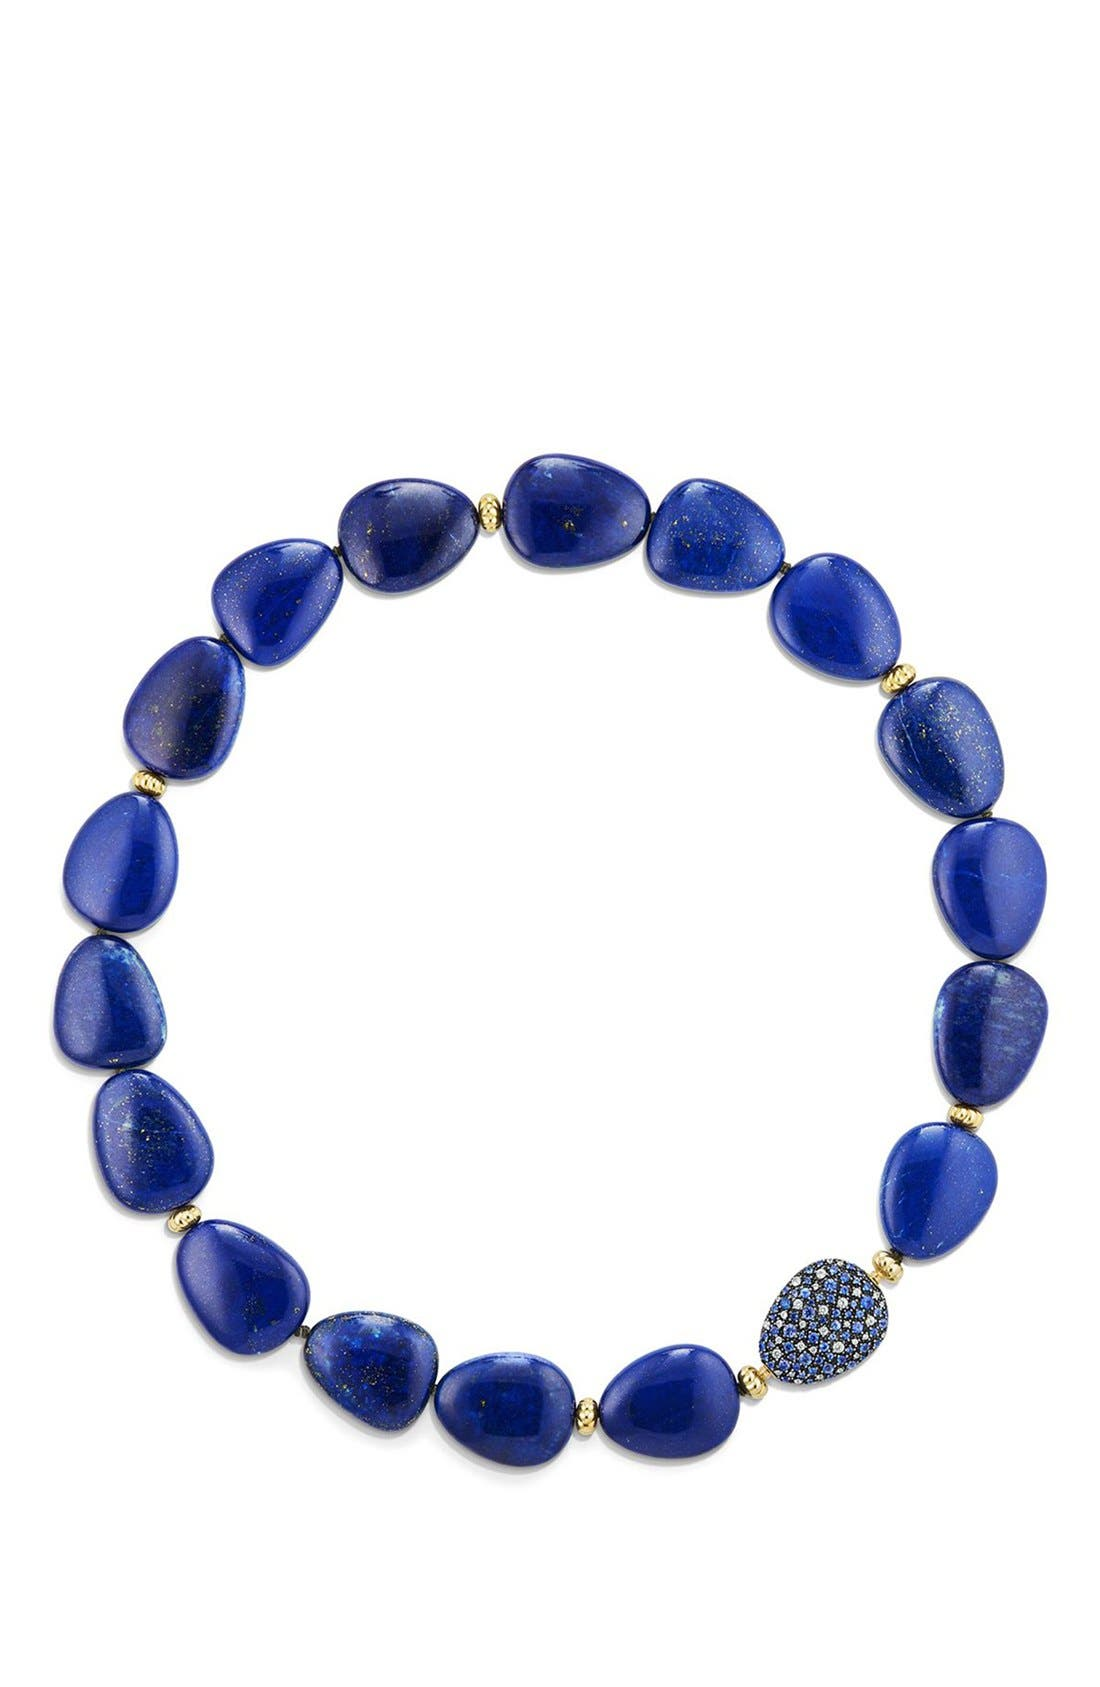 Main Image - David Yurman 'Bead & Chain' Short Necklace with Jasper & Sapphires in 18K Gold